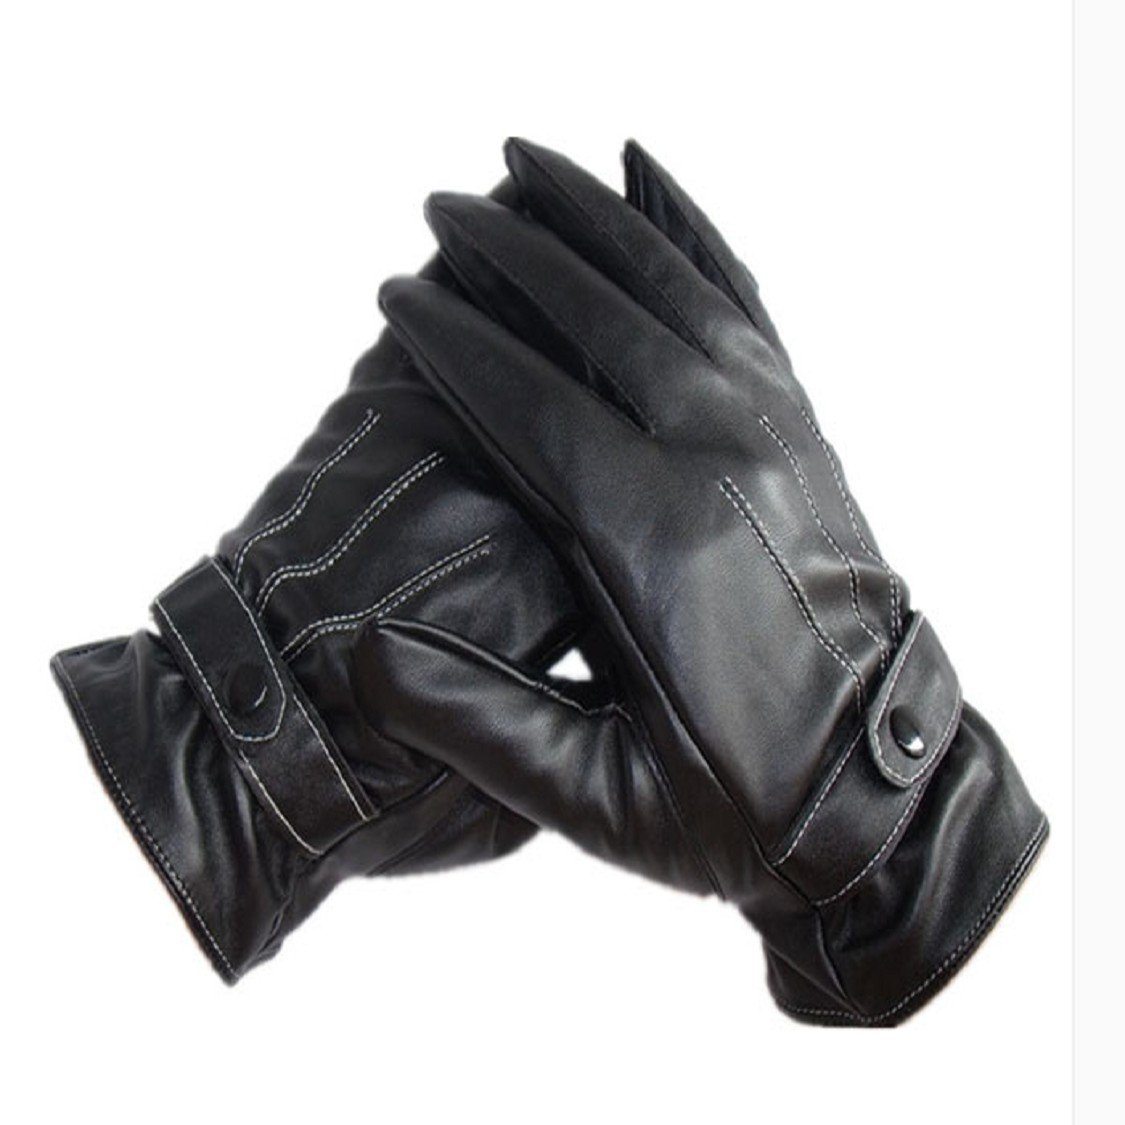 Mens leather gloves size 2x - Amazon Com Ikevan Mens Luxurious Pu Leather Gloves Outdoor Driving Warm Gloves Cashmere Mittens Autumn Winter Black Baby